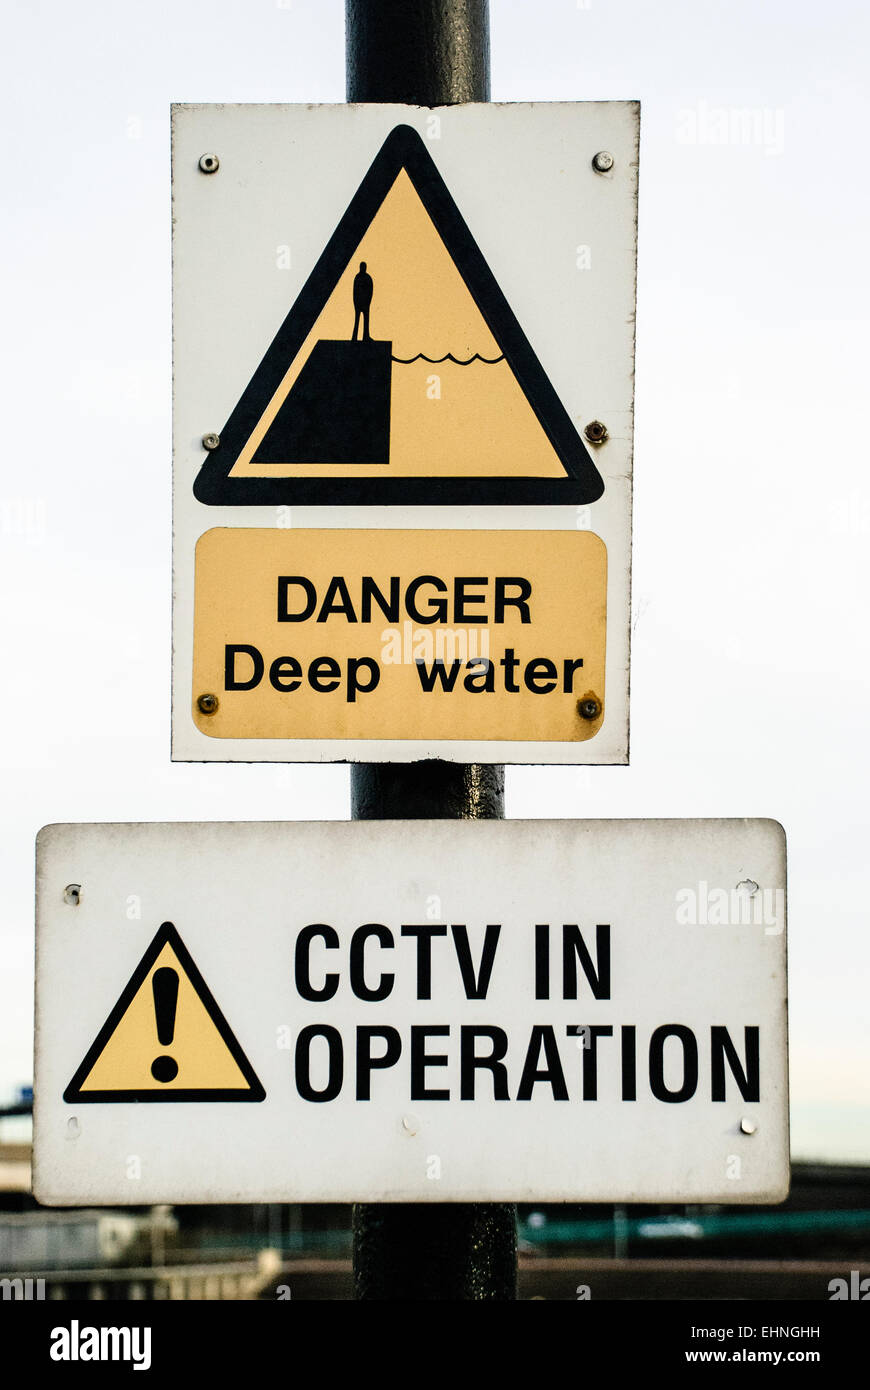 Signs at a harbour warning about deep water, and that CCTV is in operation Stock Photo